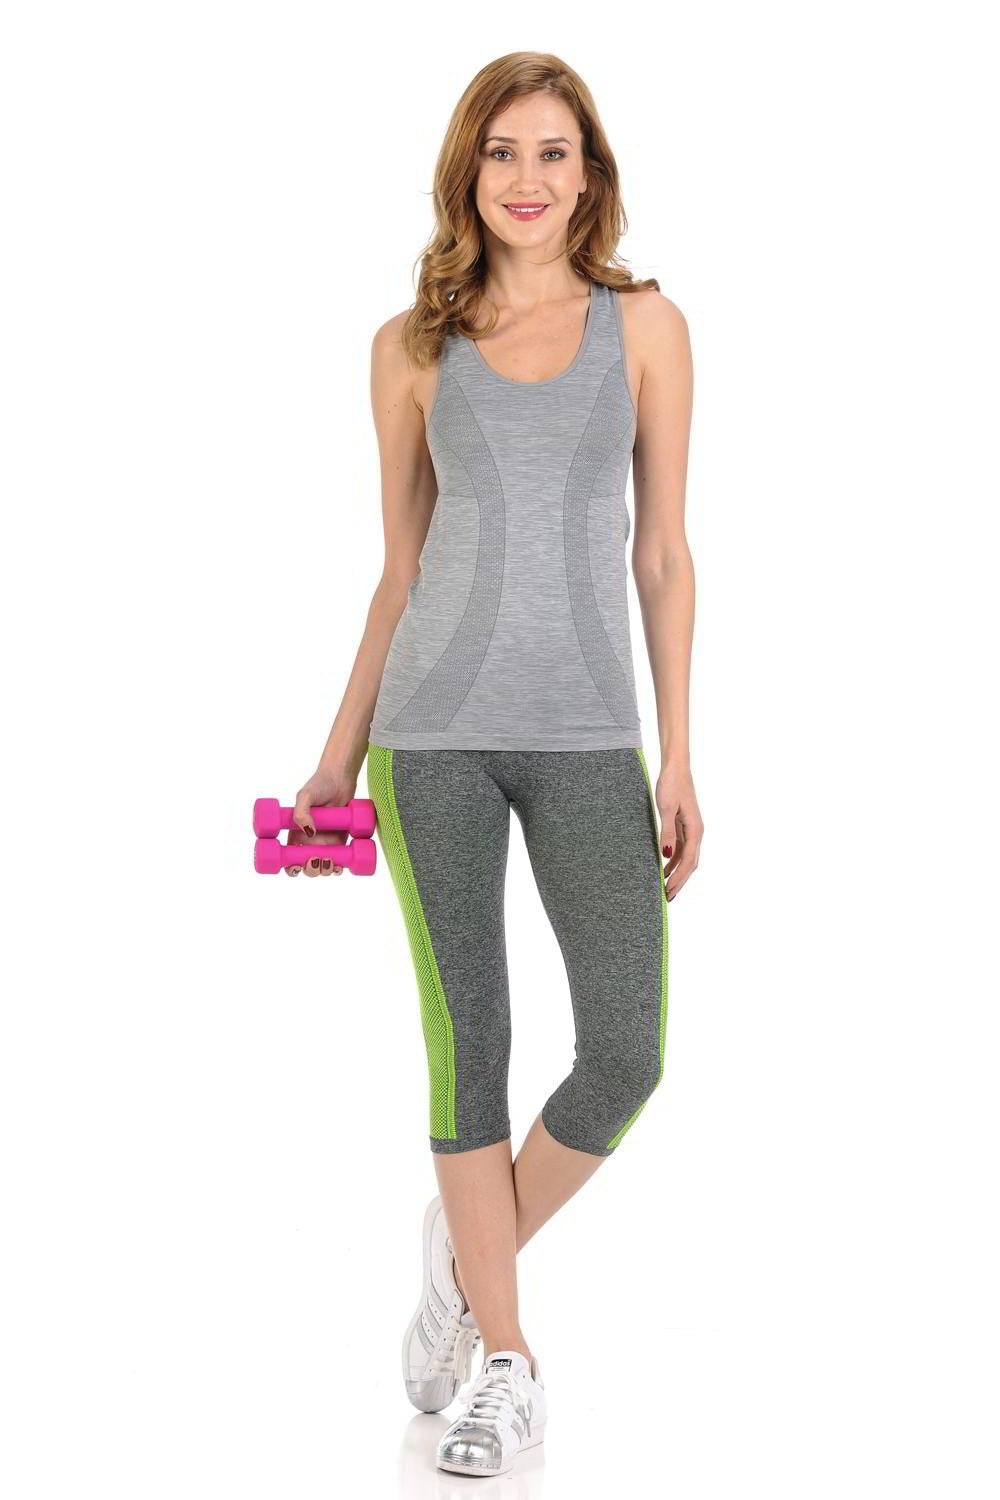 Diamante Women's Power Flex Yoga Pant Legging Sportswear - ACDN003